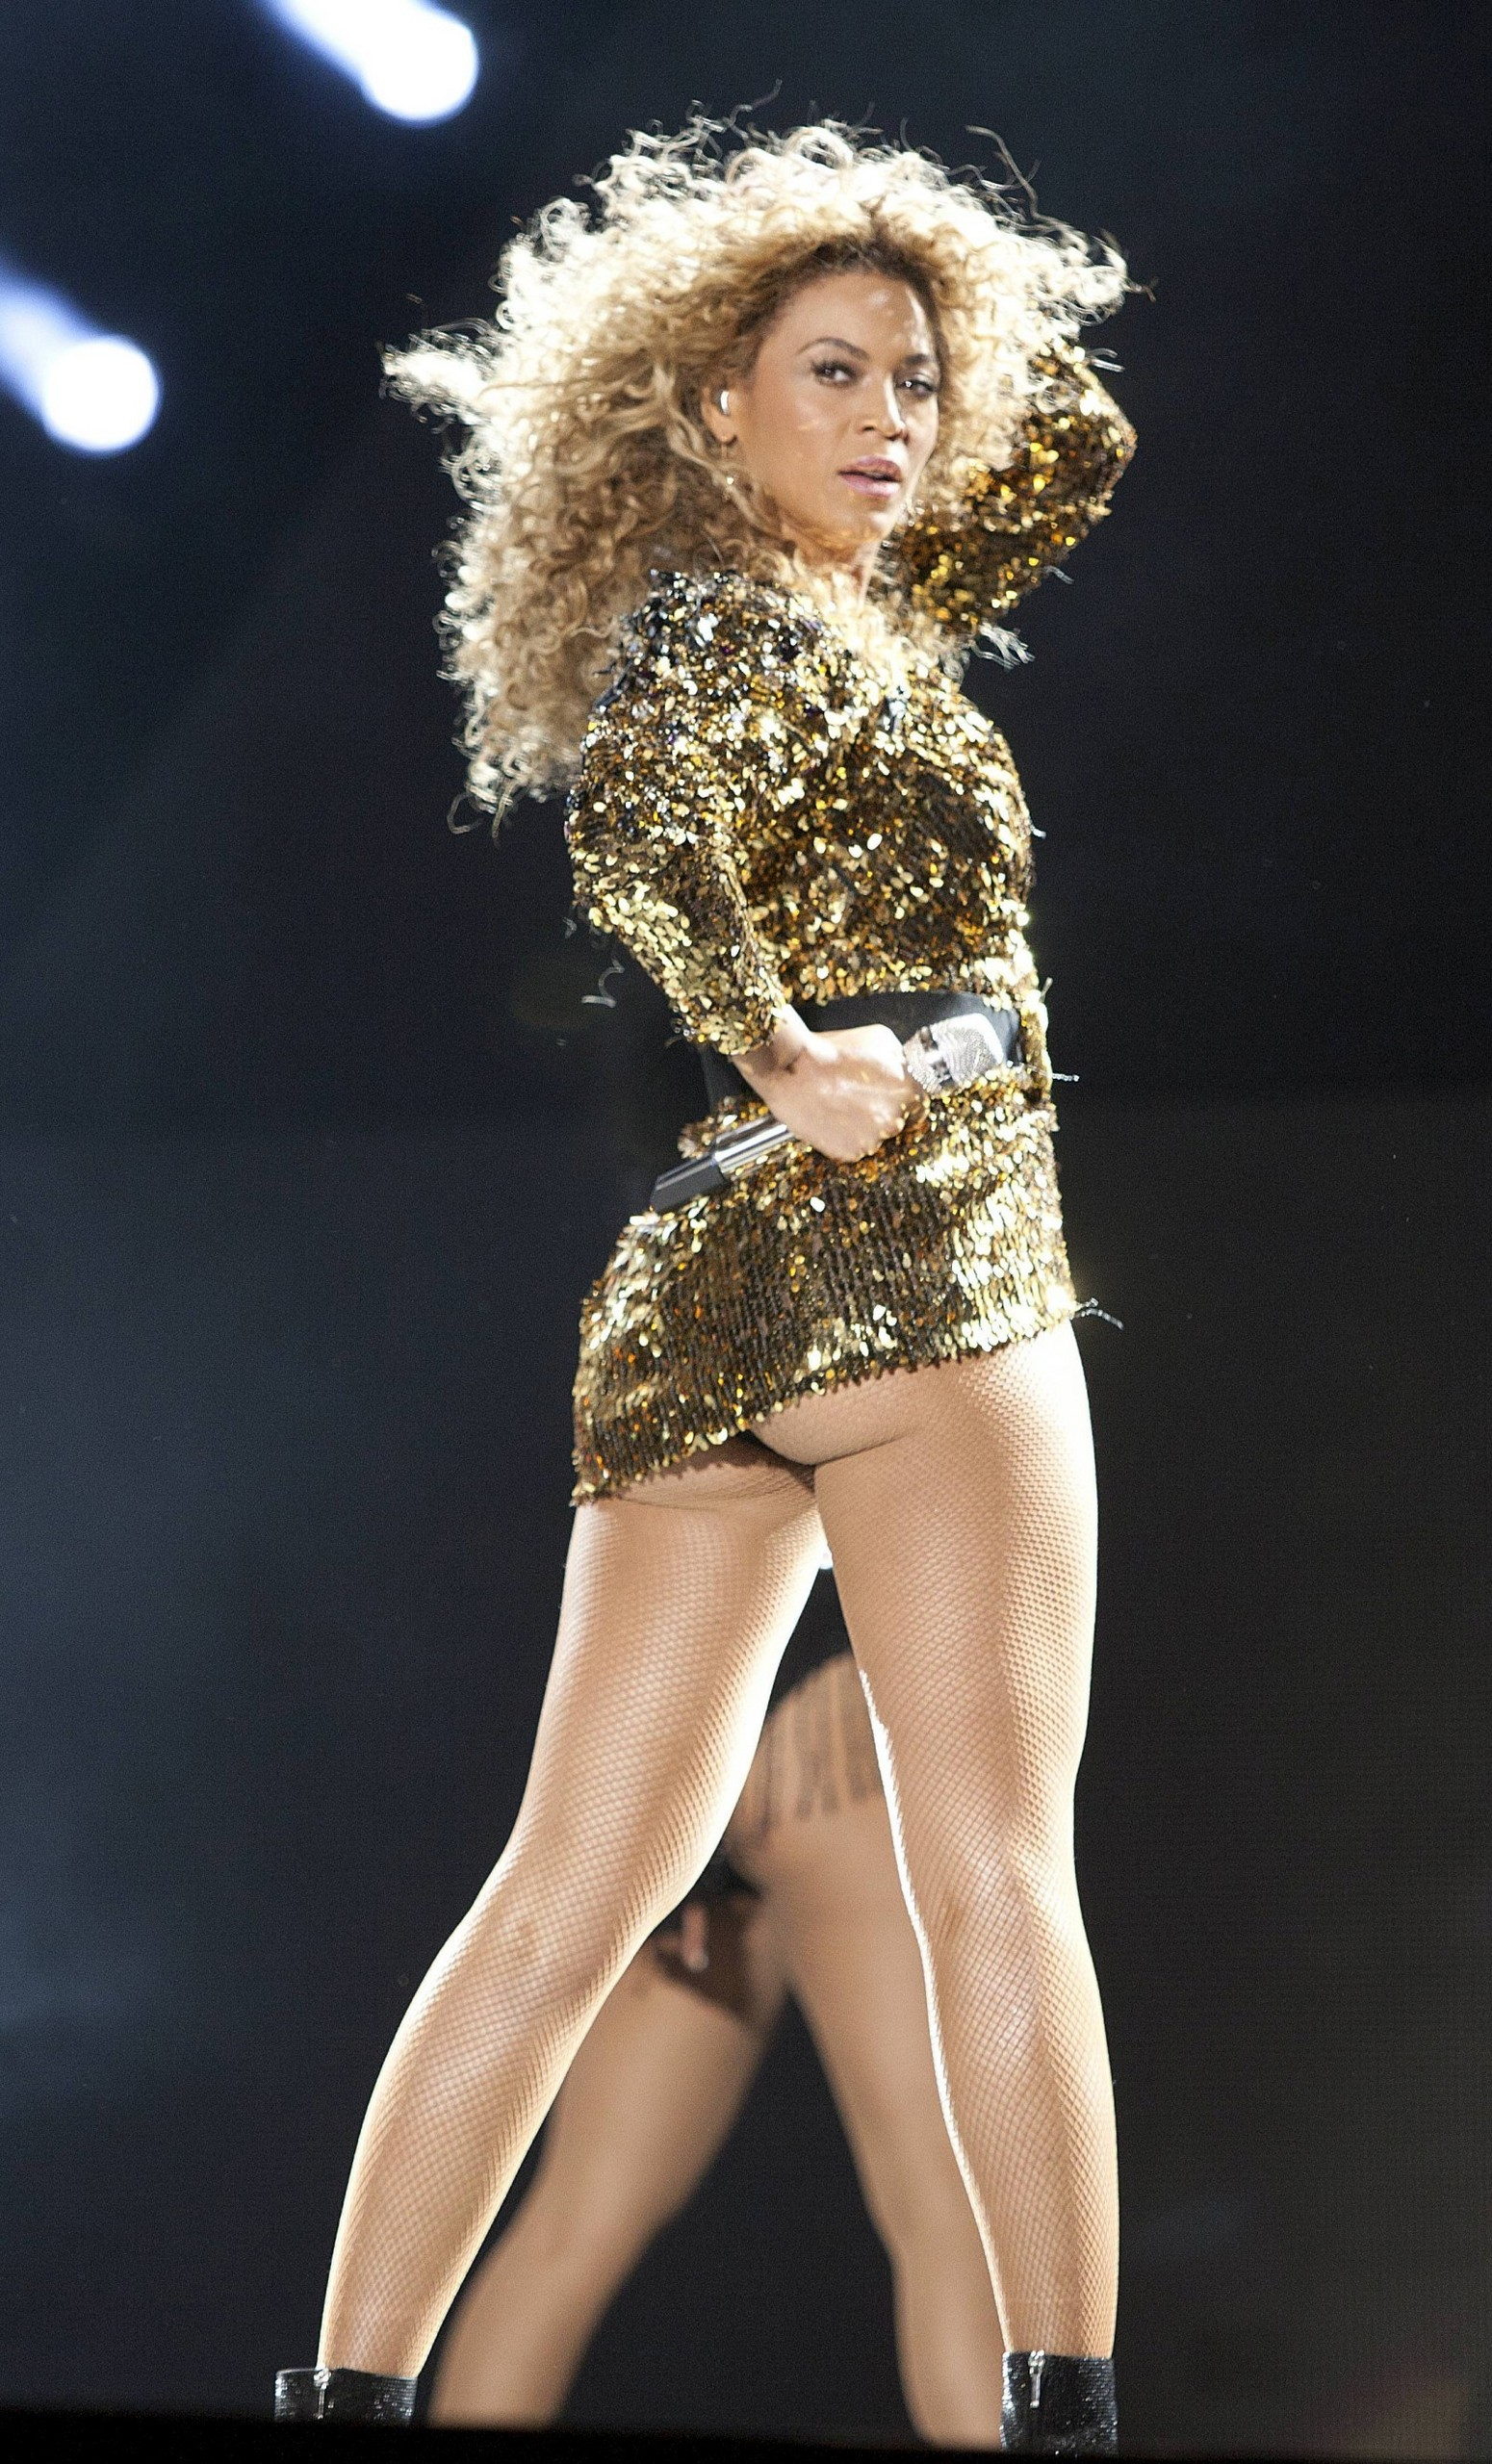 Performs At Glastonbury Festival